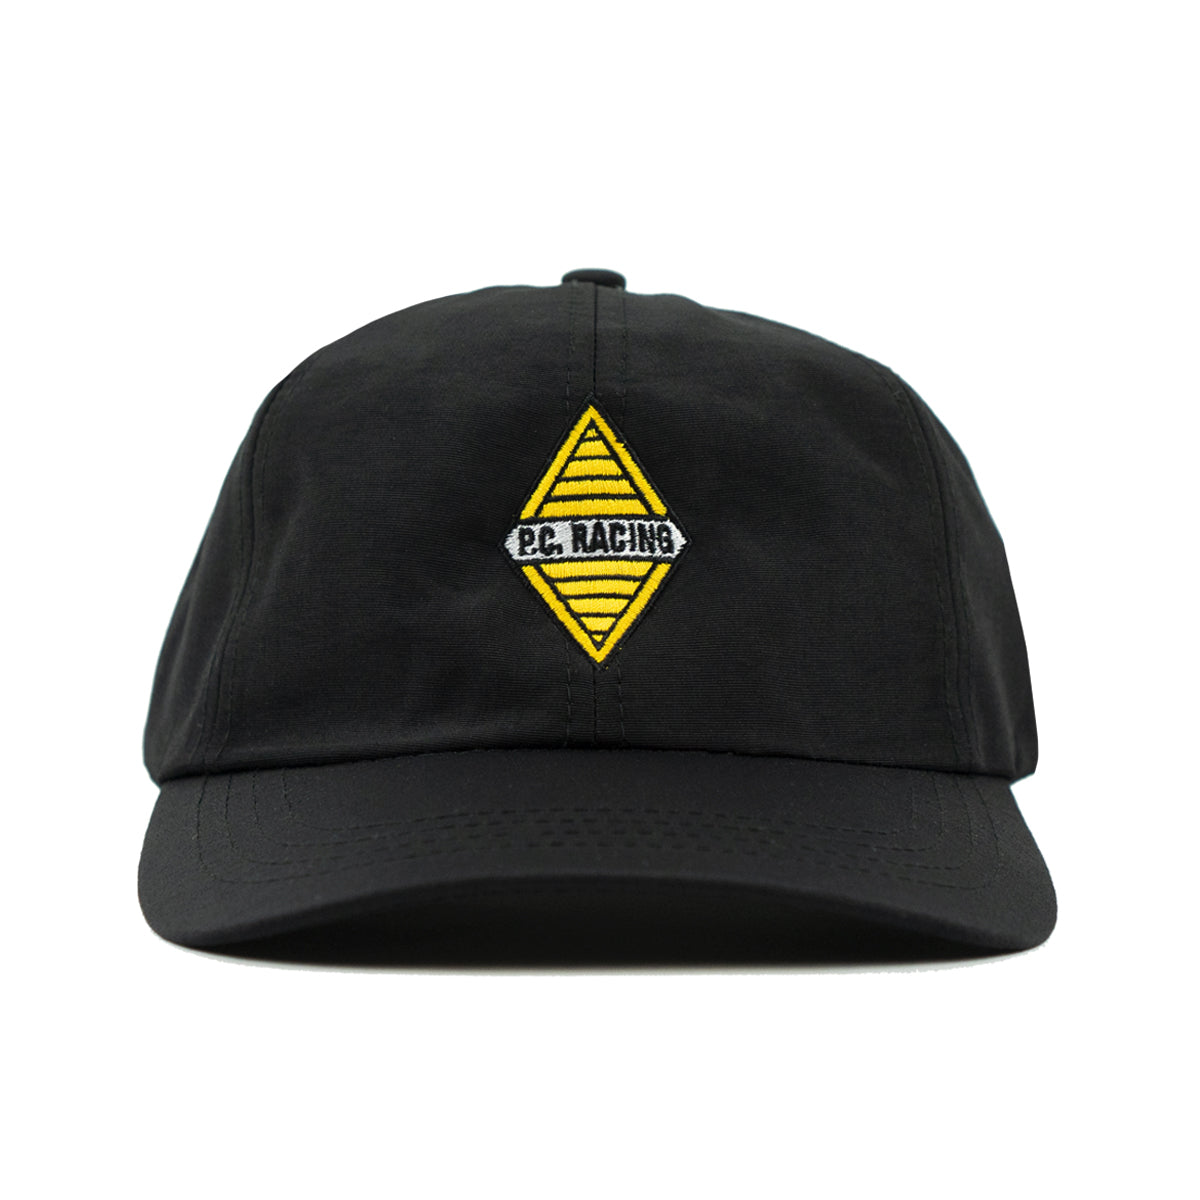 P.C. RACING DIAMOND CAP